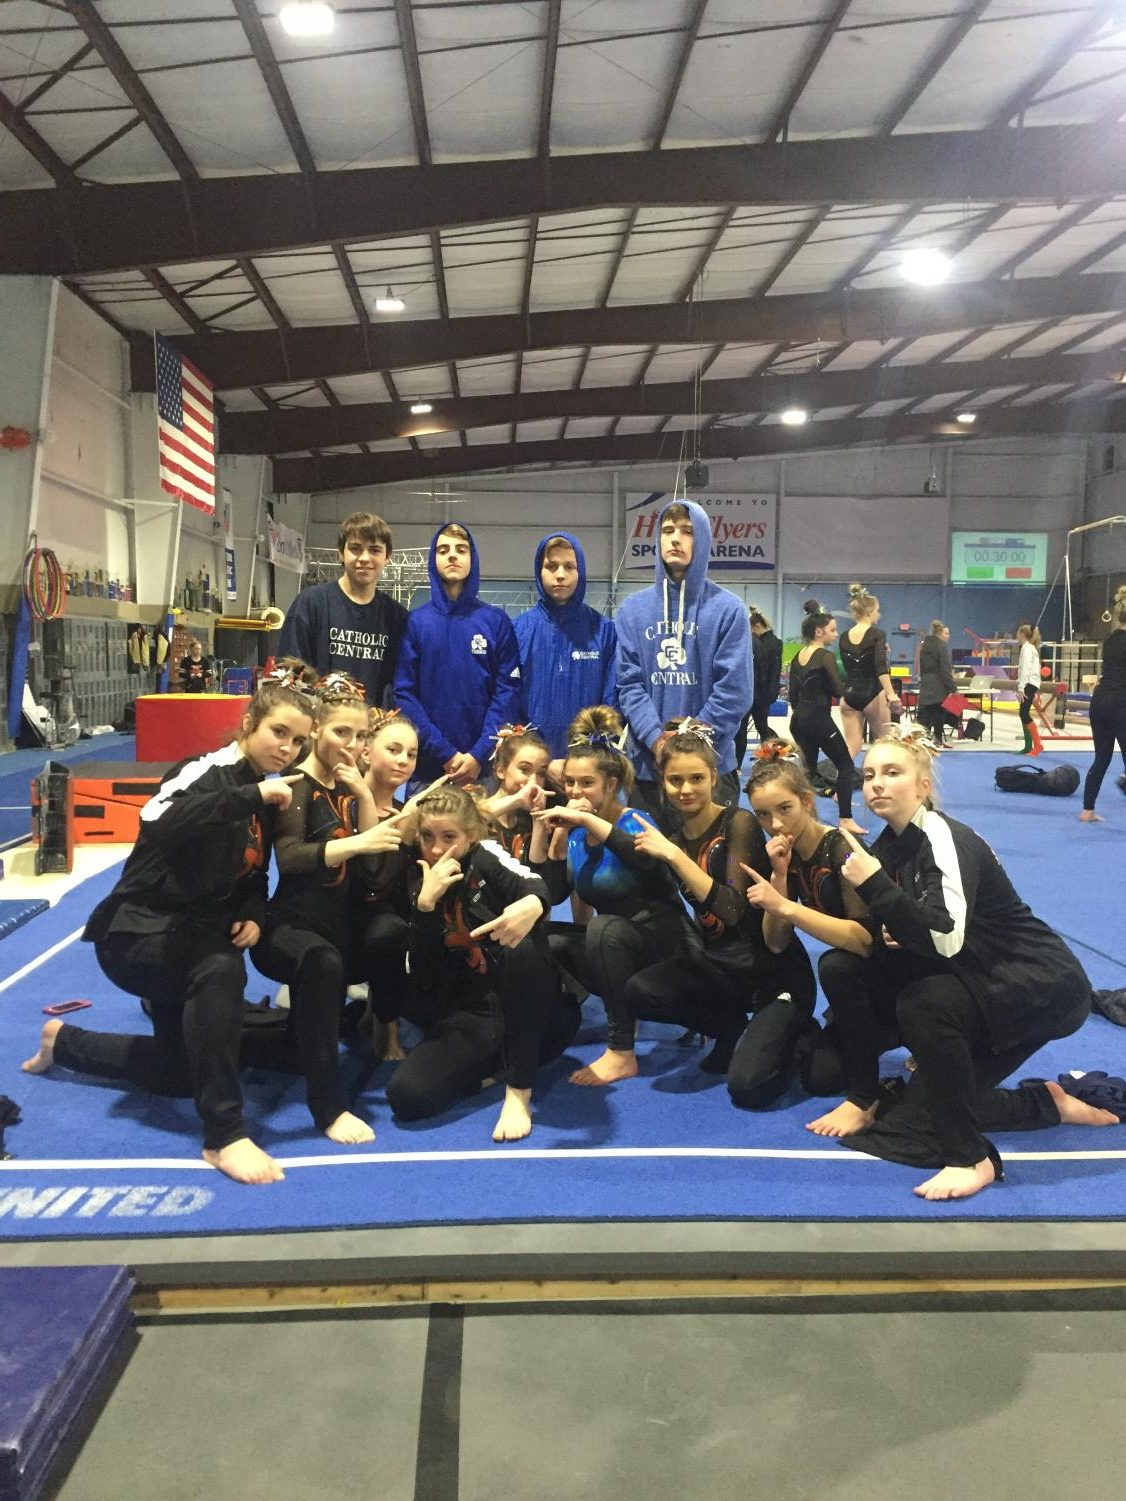 The+gymnastics+take+a+picture+with+their+Catholic+Central+supporters%2C+holding+up+one+finger+to+celebrate+their+win+against+Livonia+Churchill.+%E2%80%9CIt+was+really+funny%2C%E2%80%9D+Libby+Stafford+%2810%29+said.+%E2%80%9CI+don%E2%80%99t+even+know+who+they+were+here+to+watch.%E2%80%9D